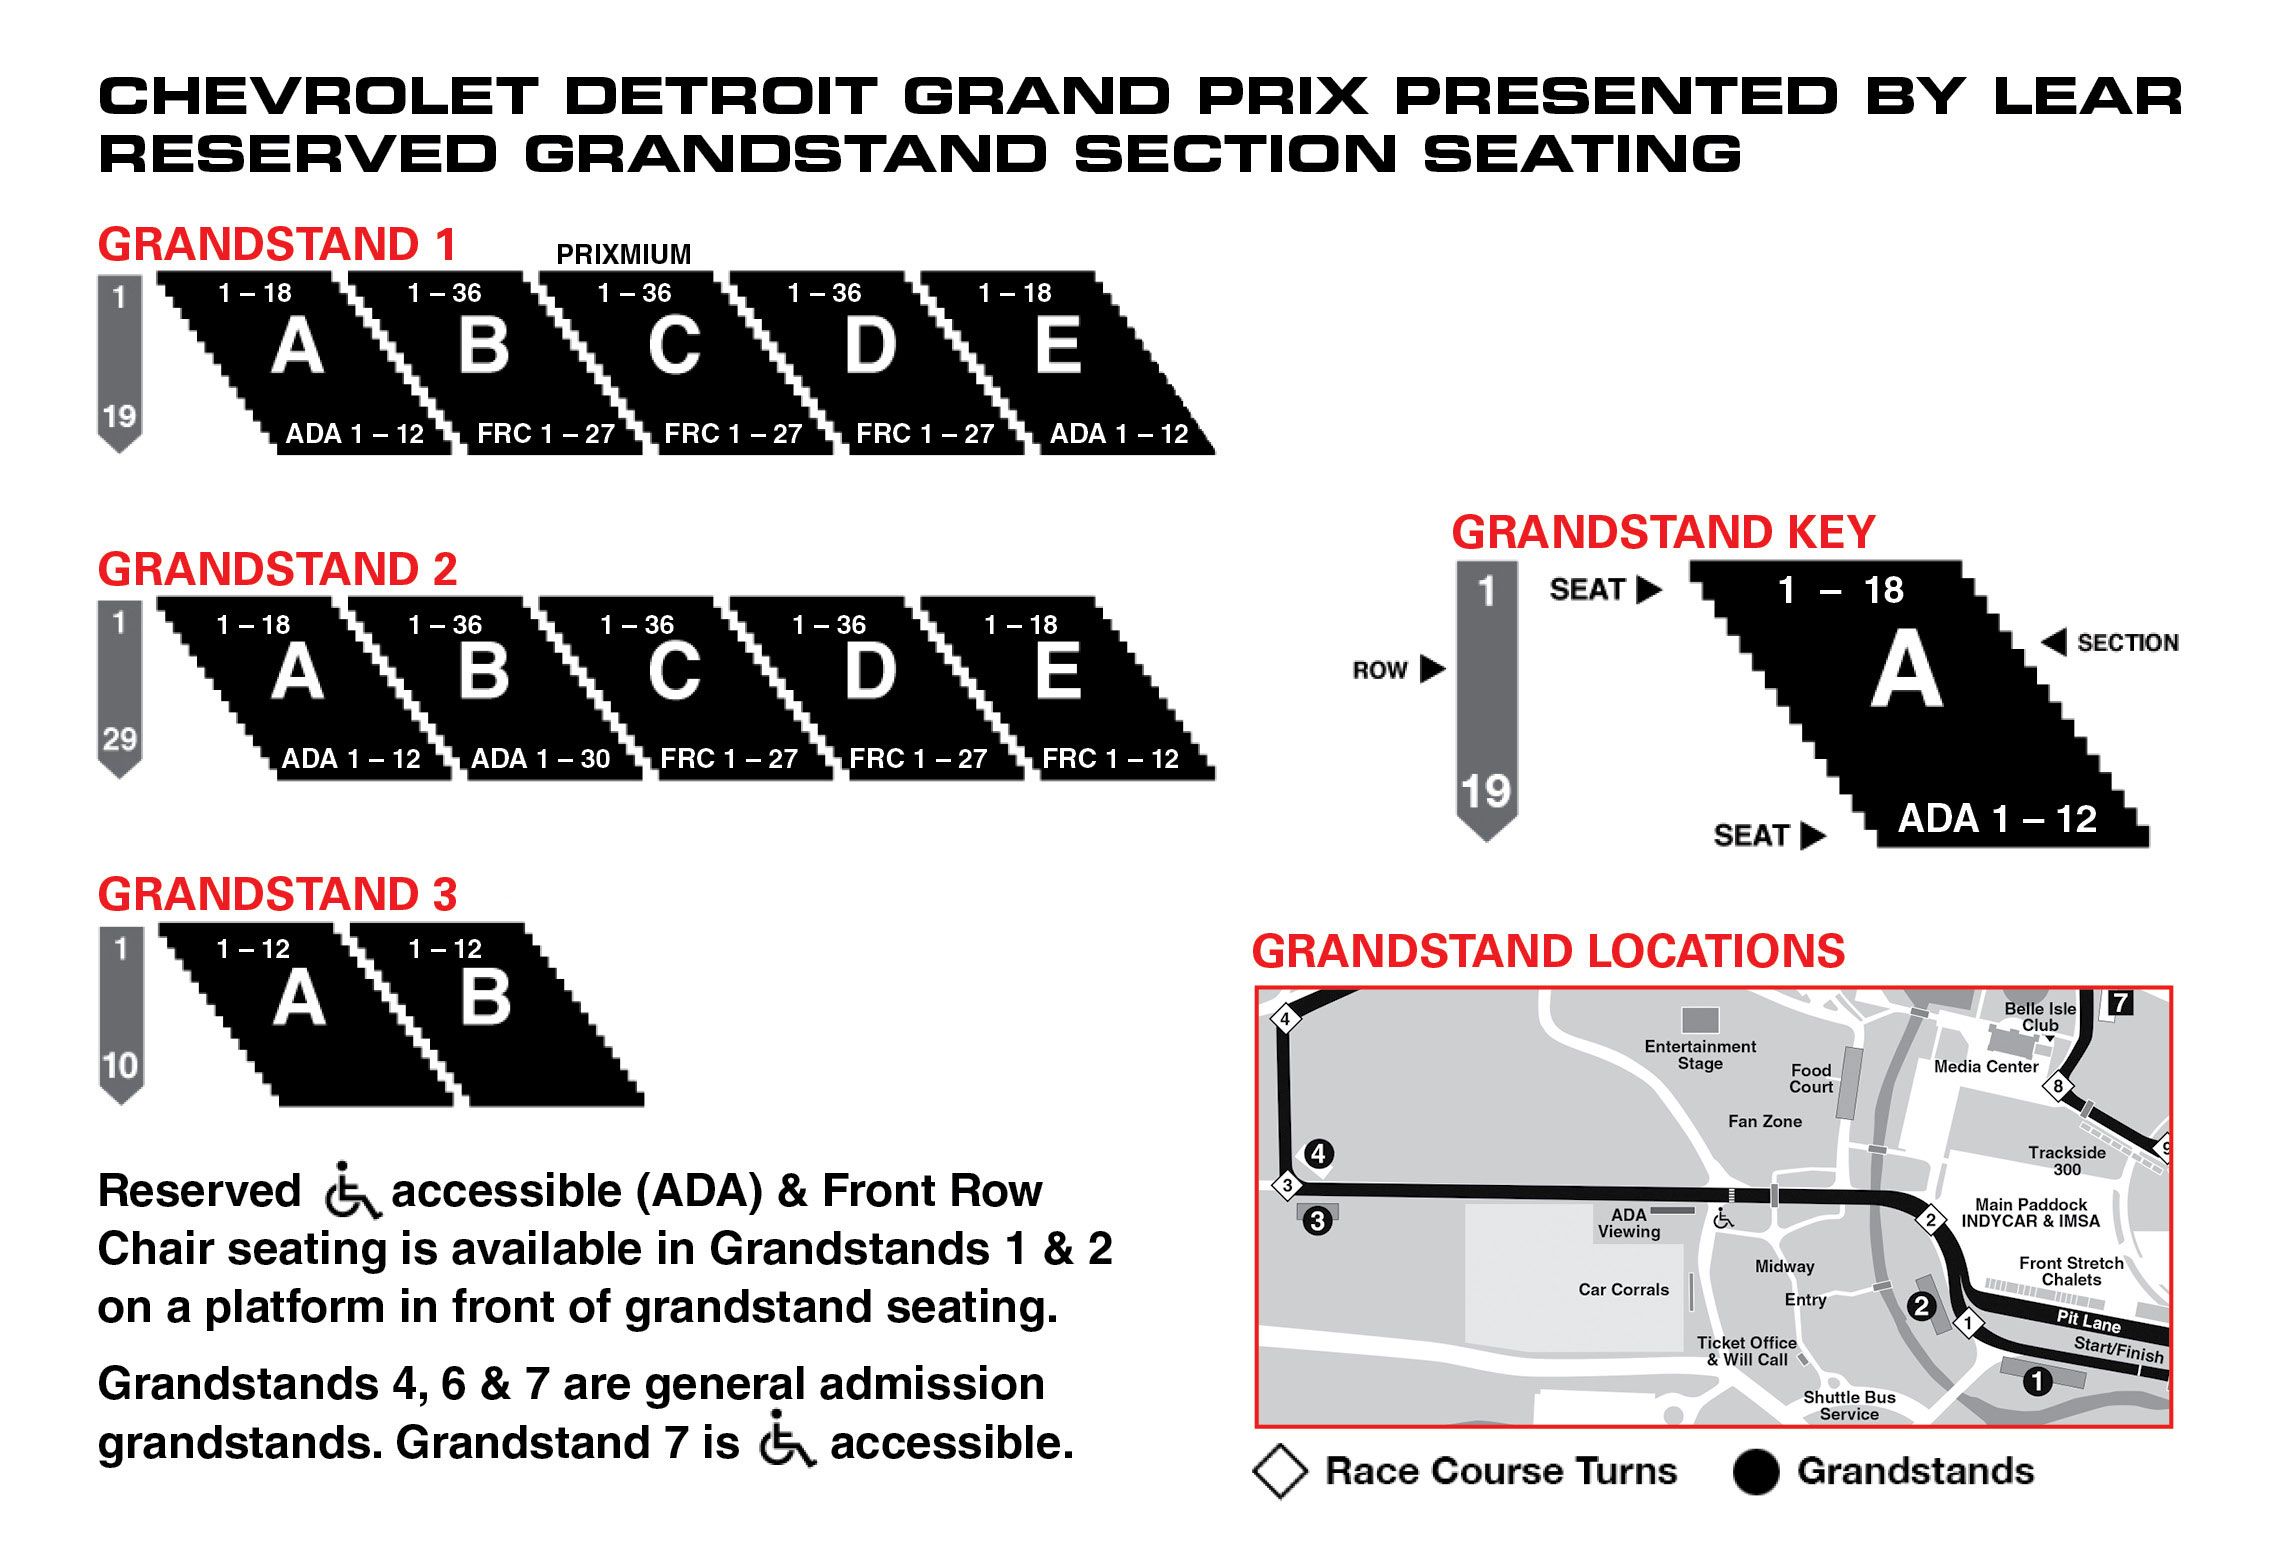 Exhibition Stand Terms And Conditions : Chevrolet detroit grand prix presented by lear may